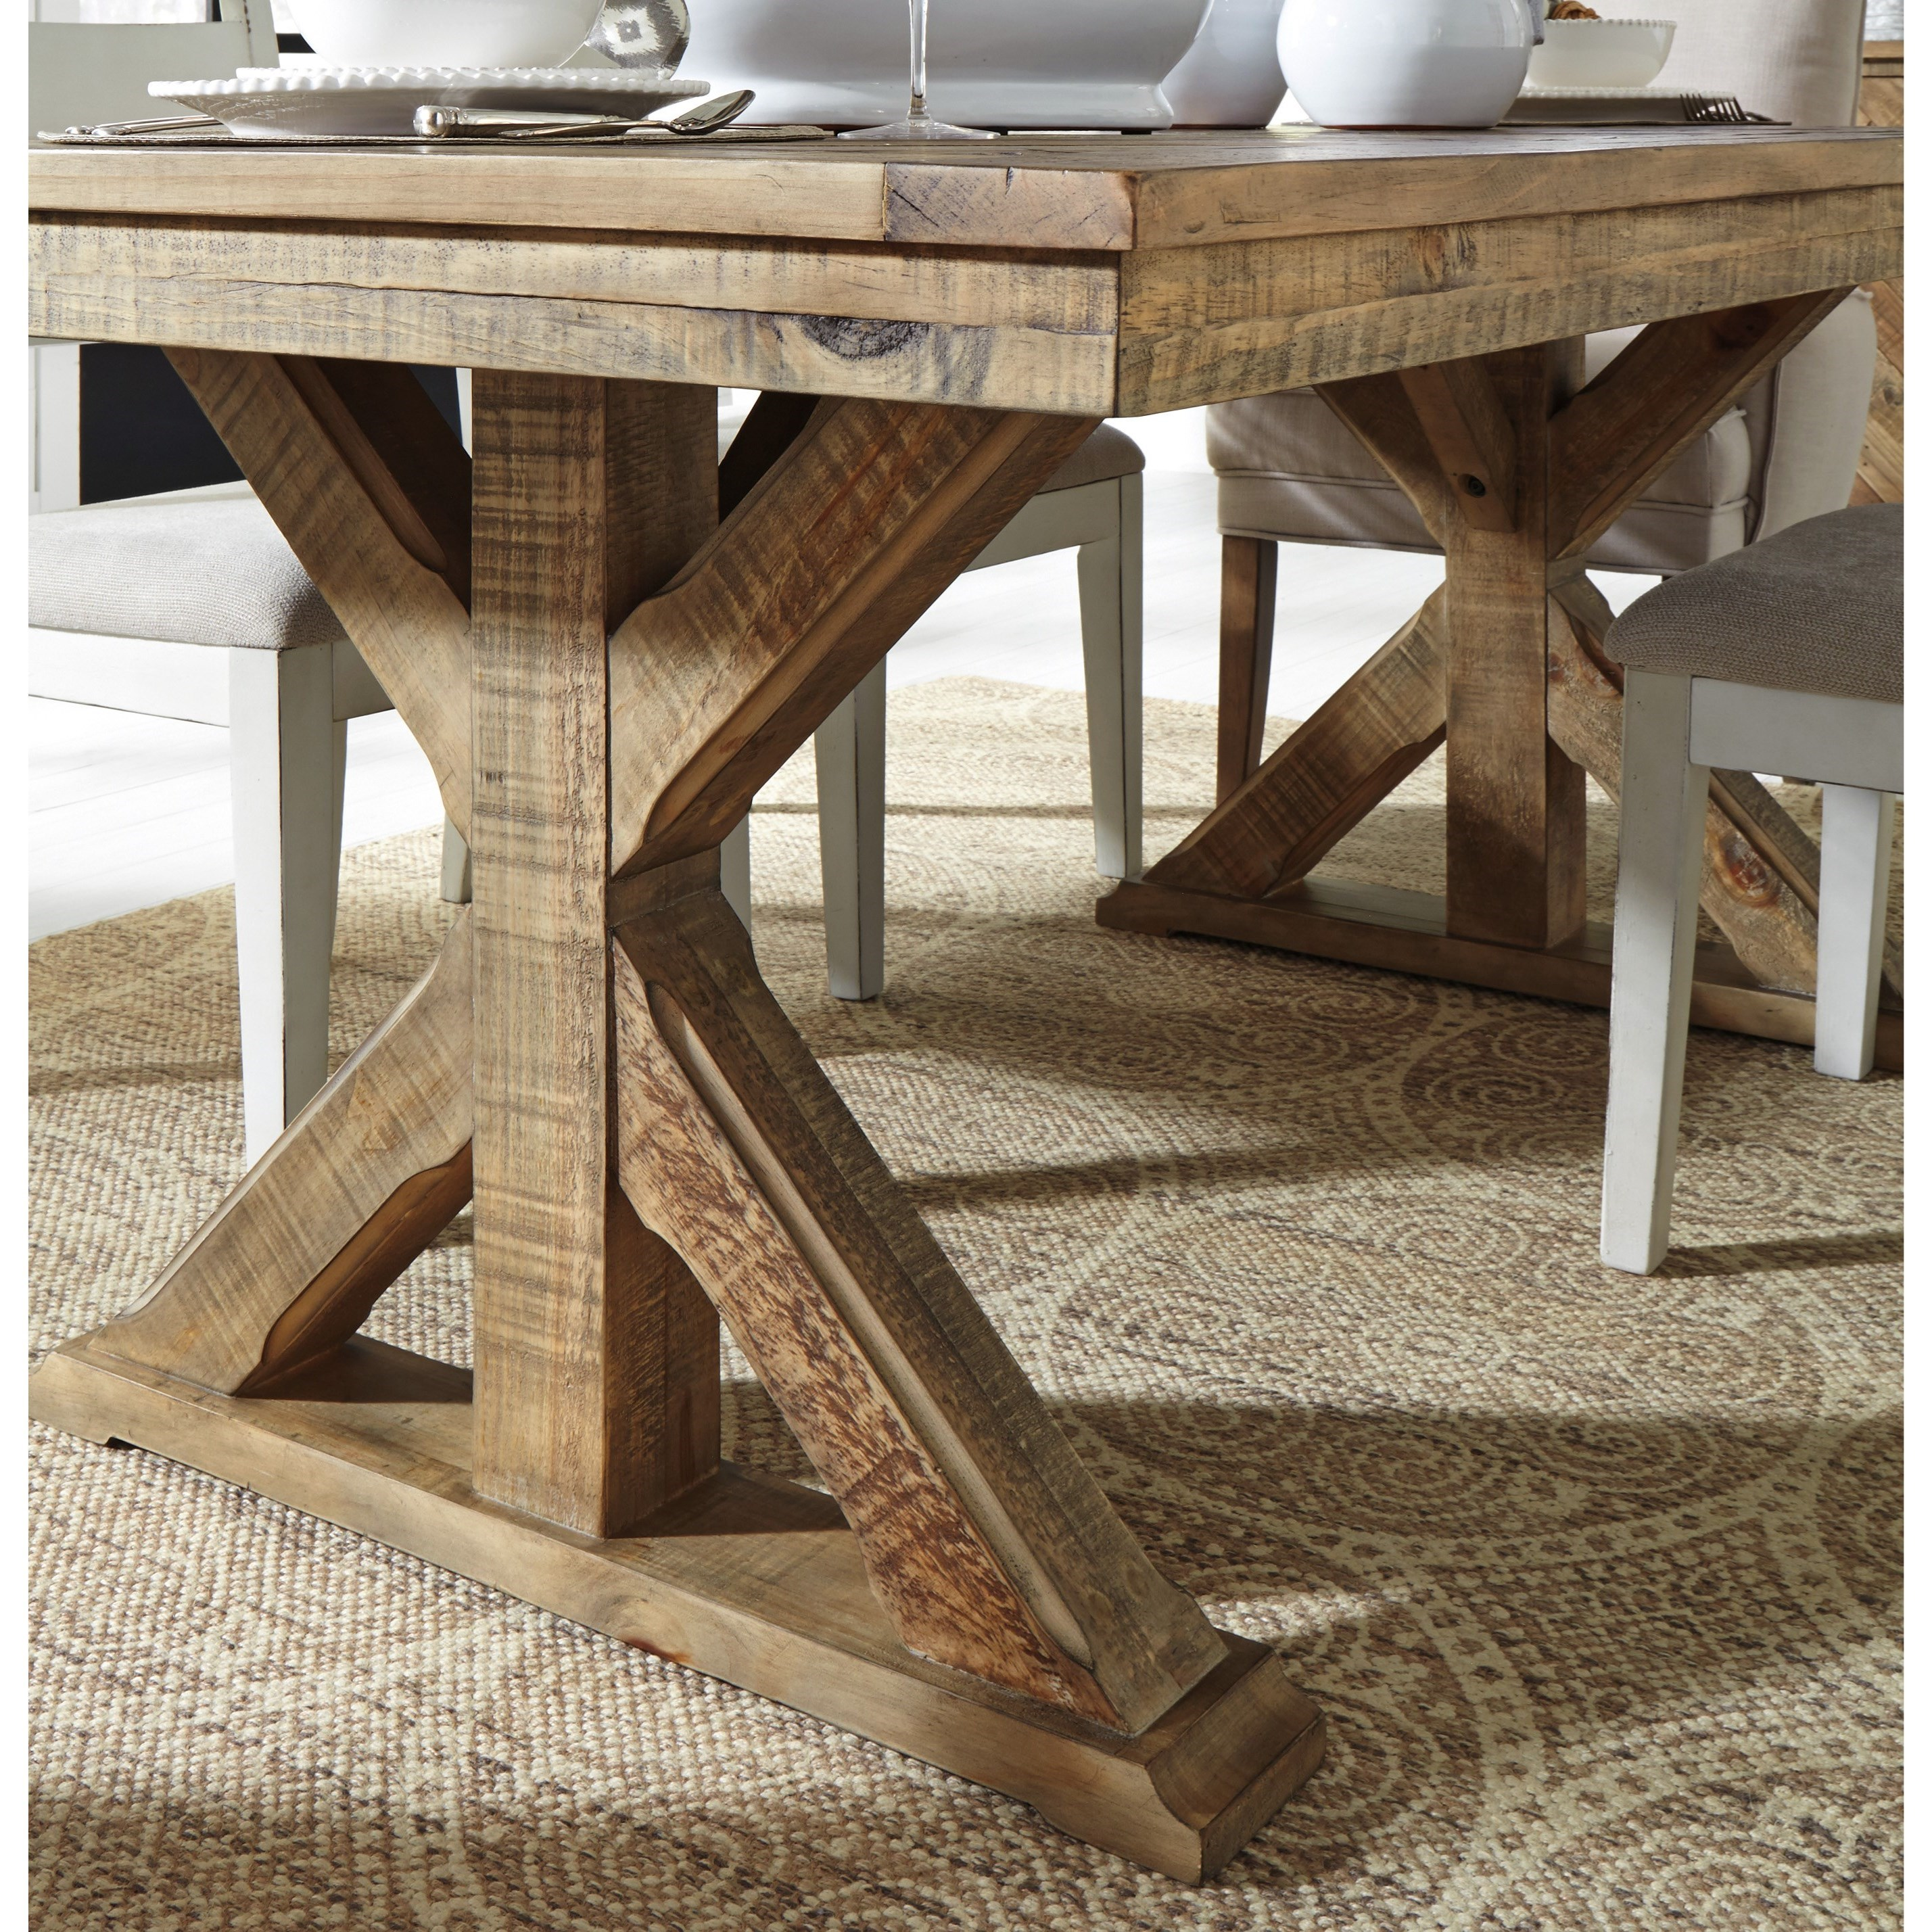 Grindleburg Dining Room Table Round: Signature Design By Ashley Grindleburg D754-125